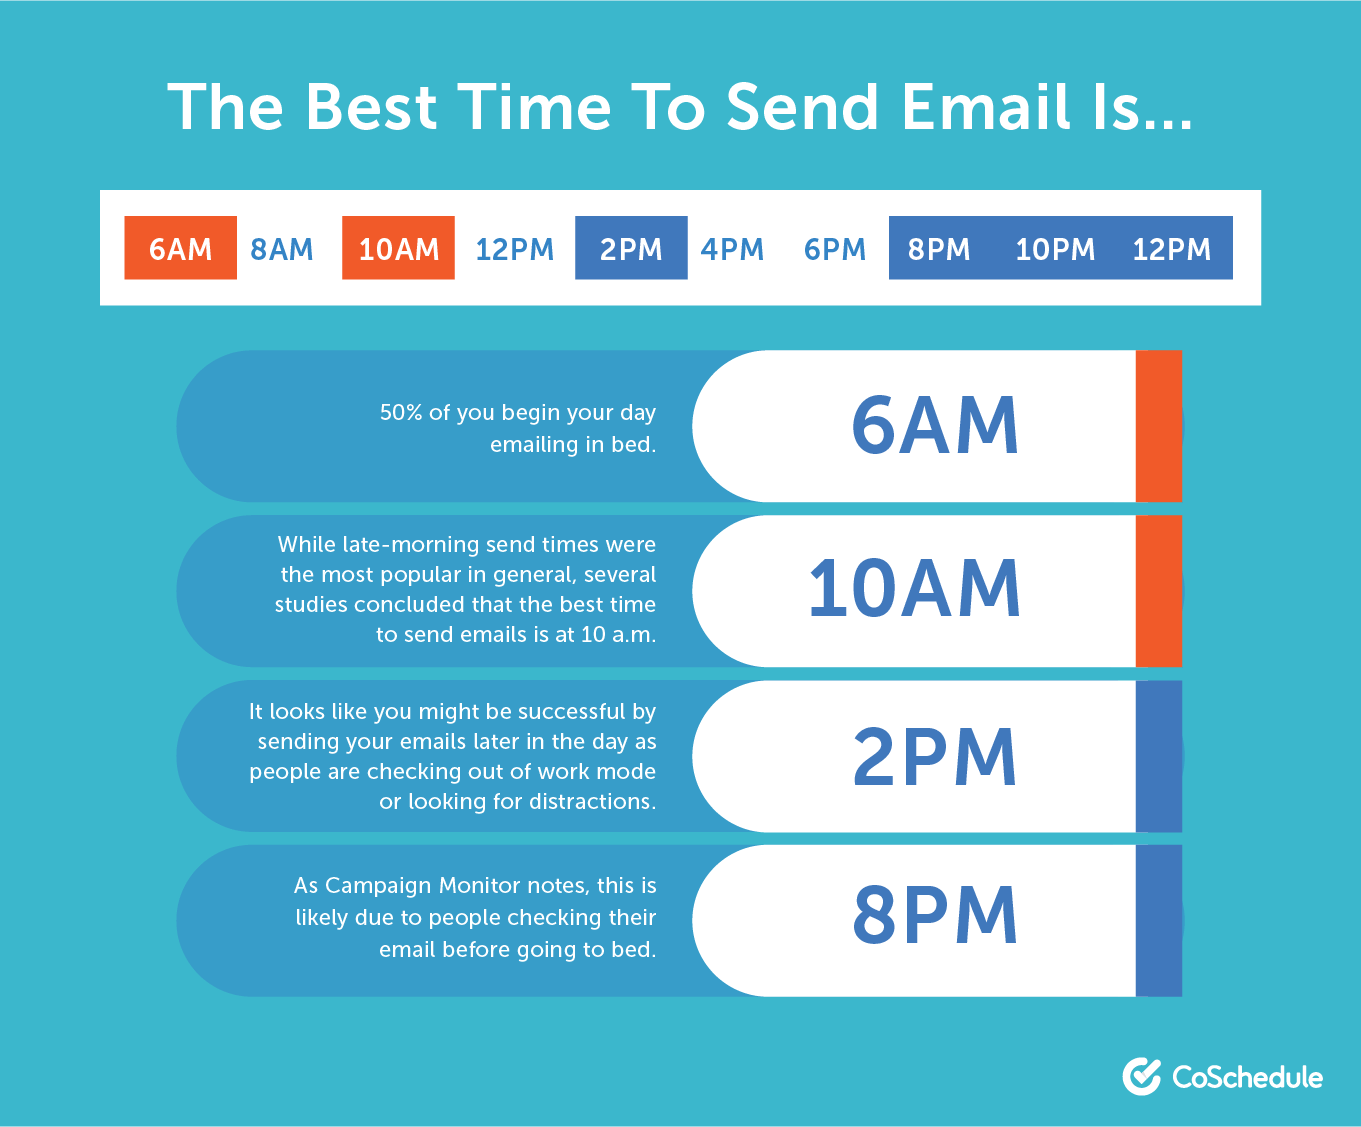 Finding the best time to send an email.